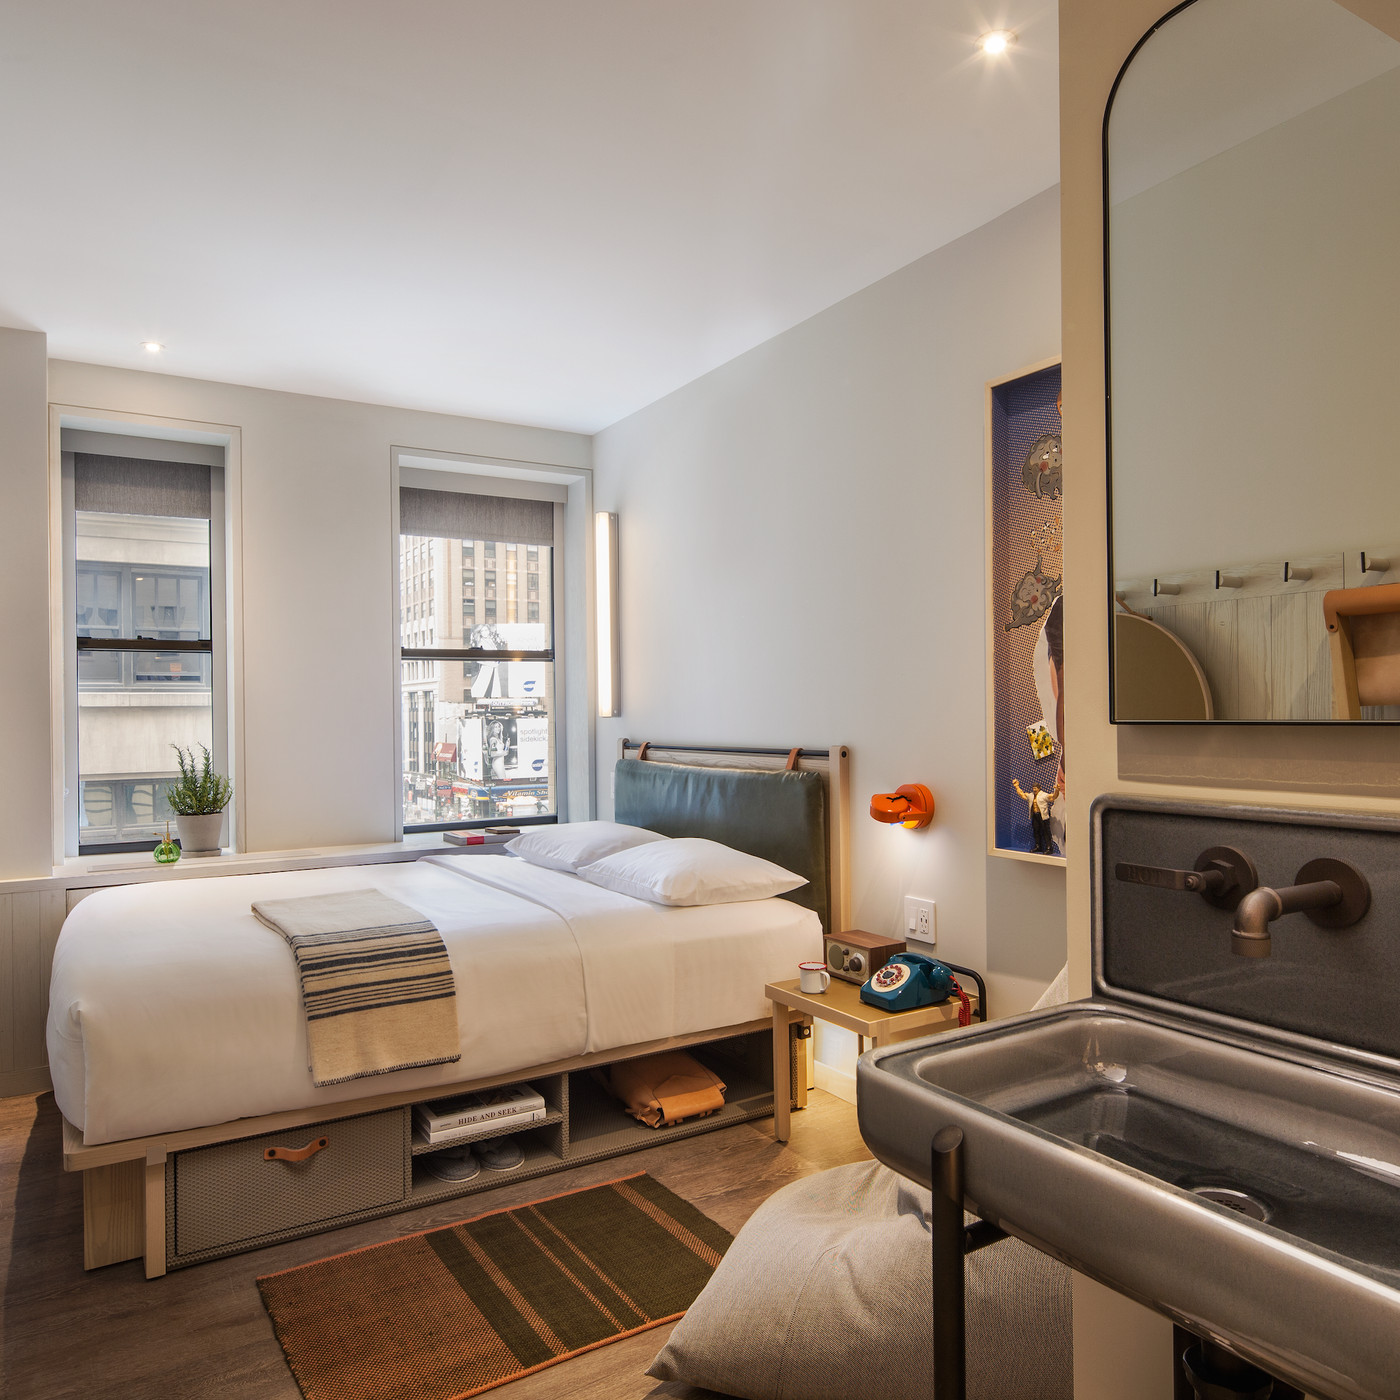 Moxy Hotels launches its NYC flagship in a landmarked Midtown building - Curbed NY